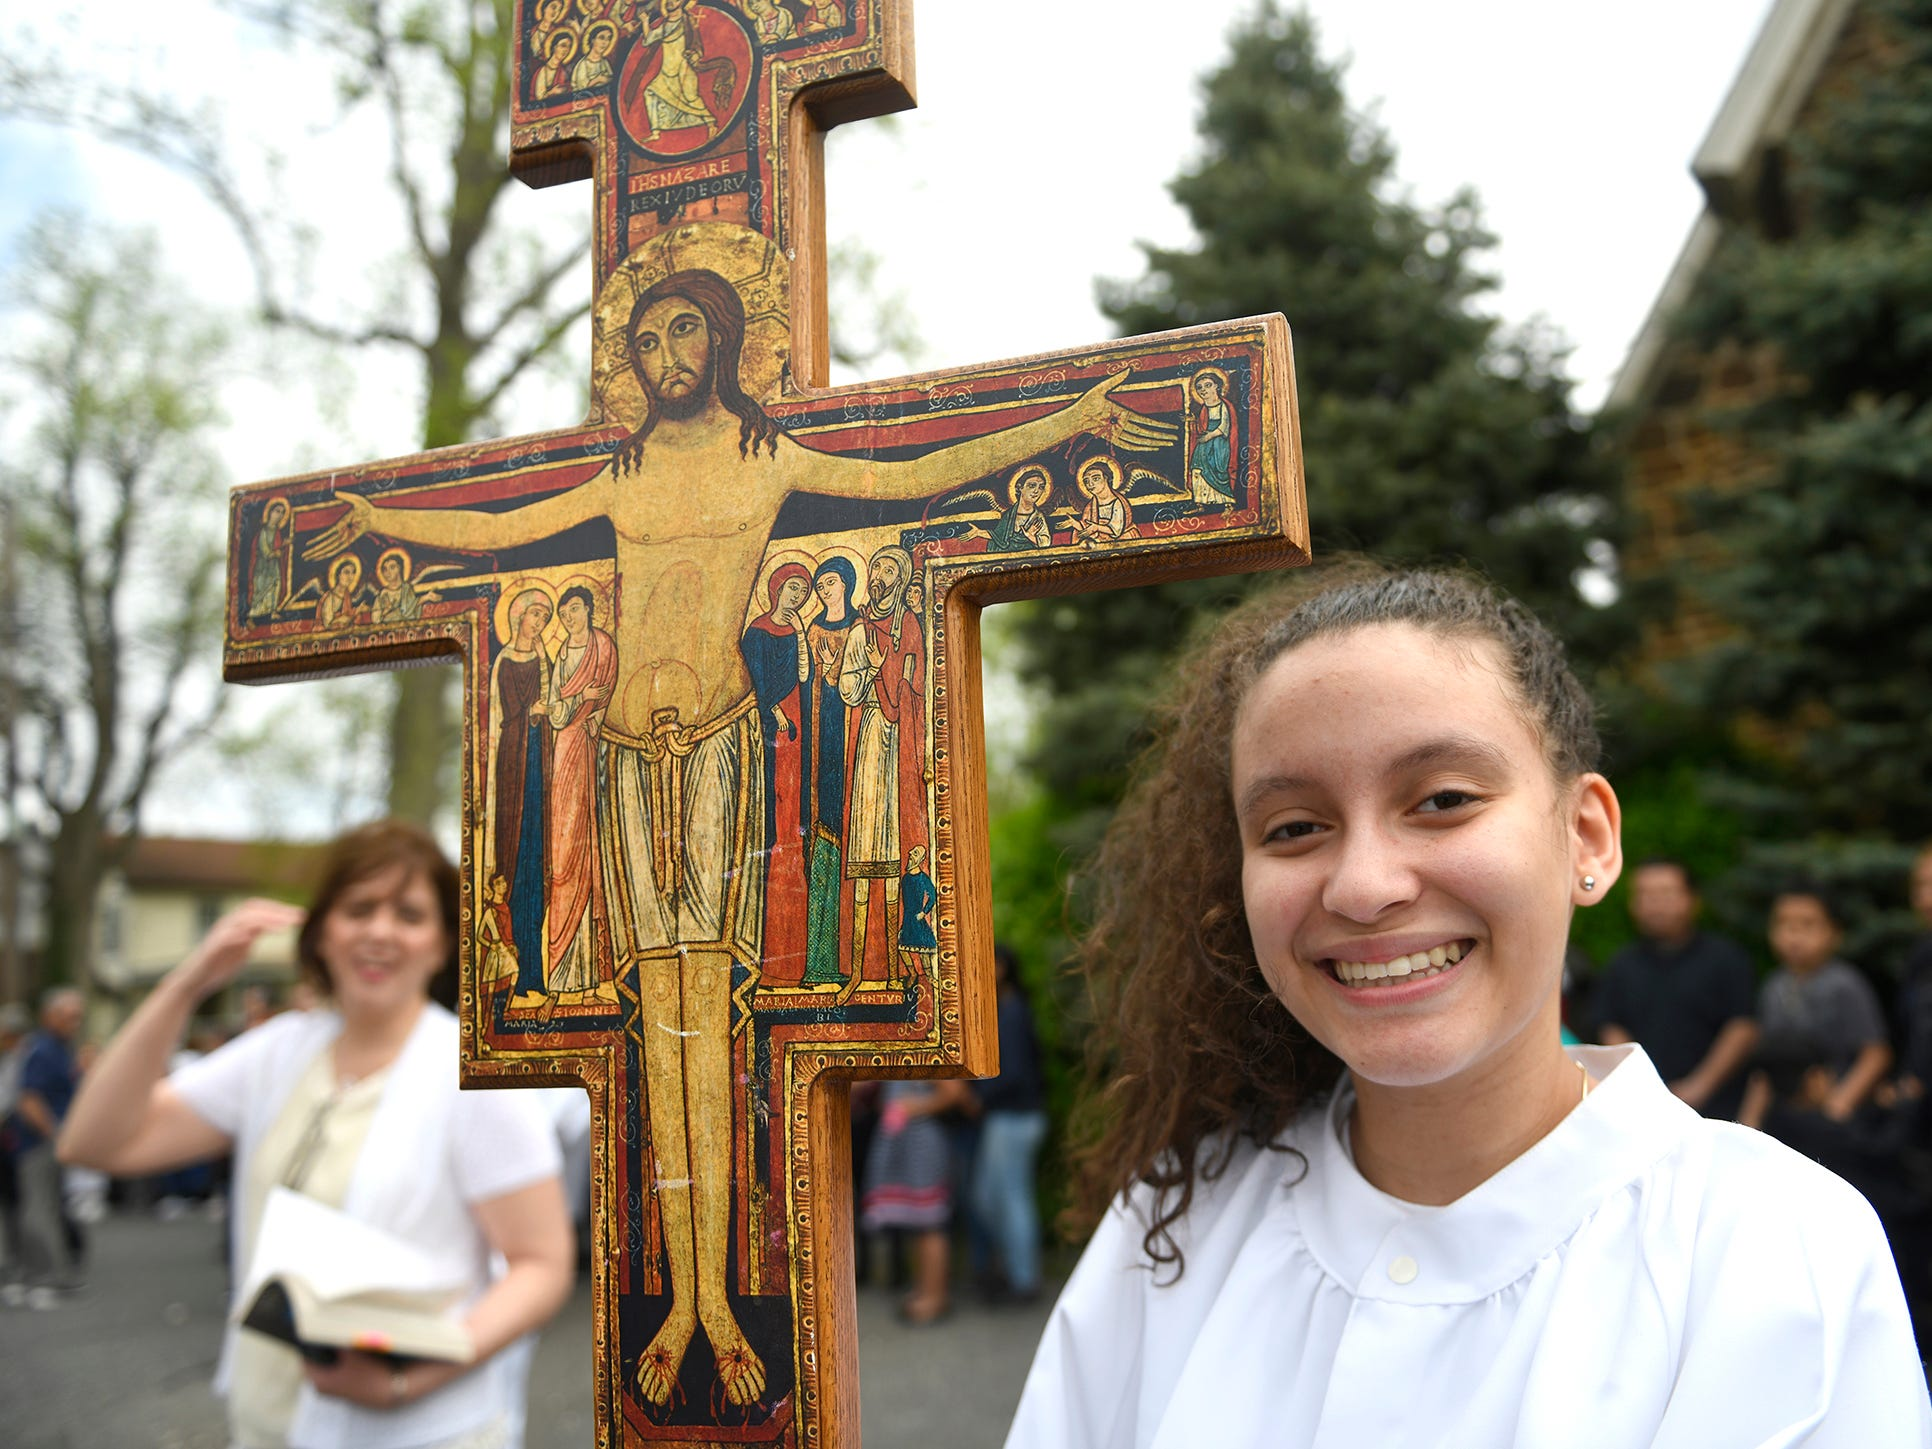 Betzalis DeLaCruz participated in leading the Good Friday procession down Almond Street on Friday, April 19.